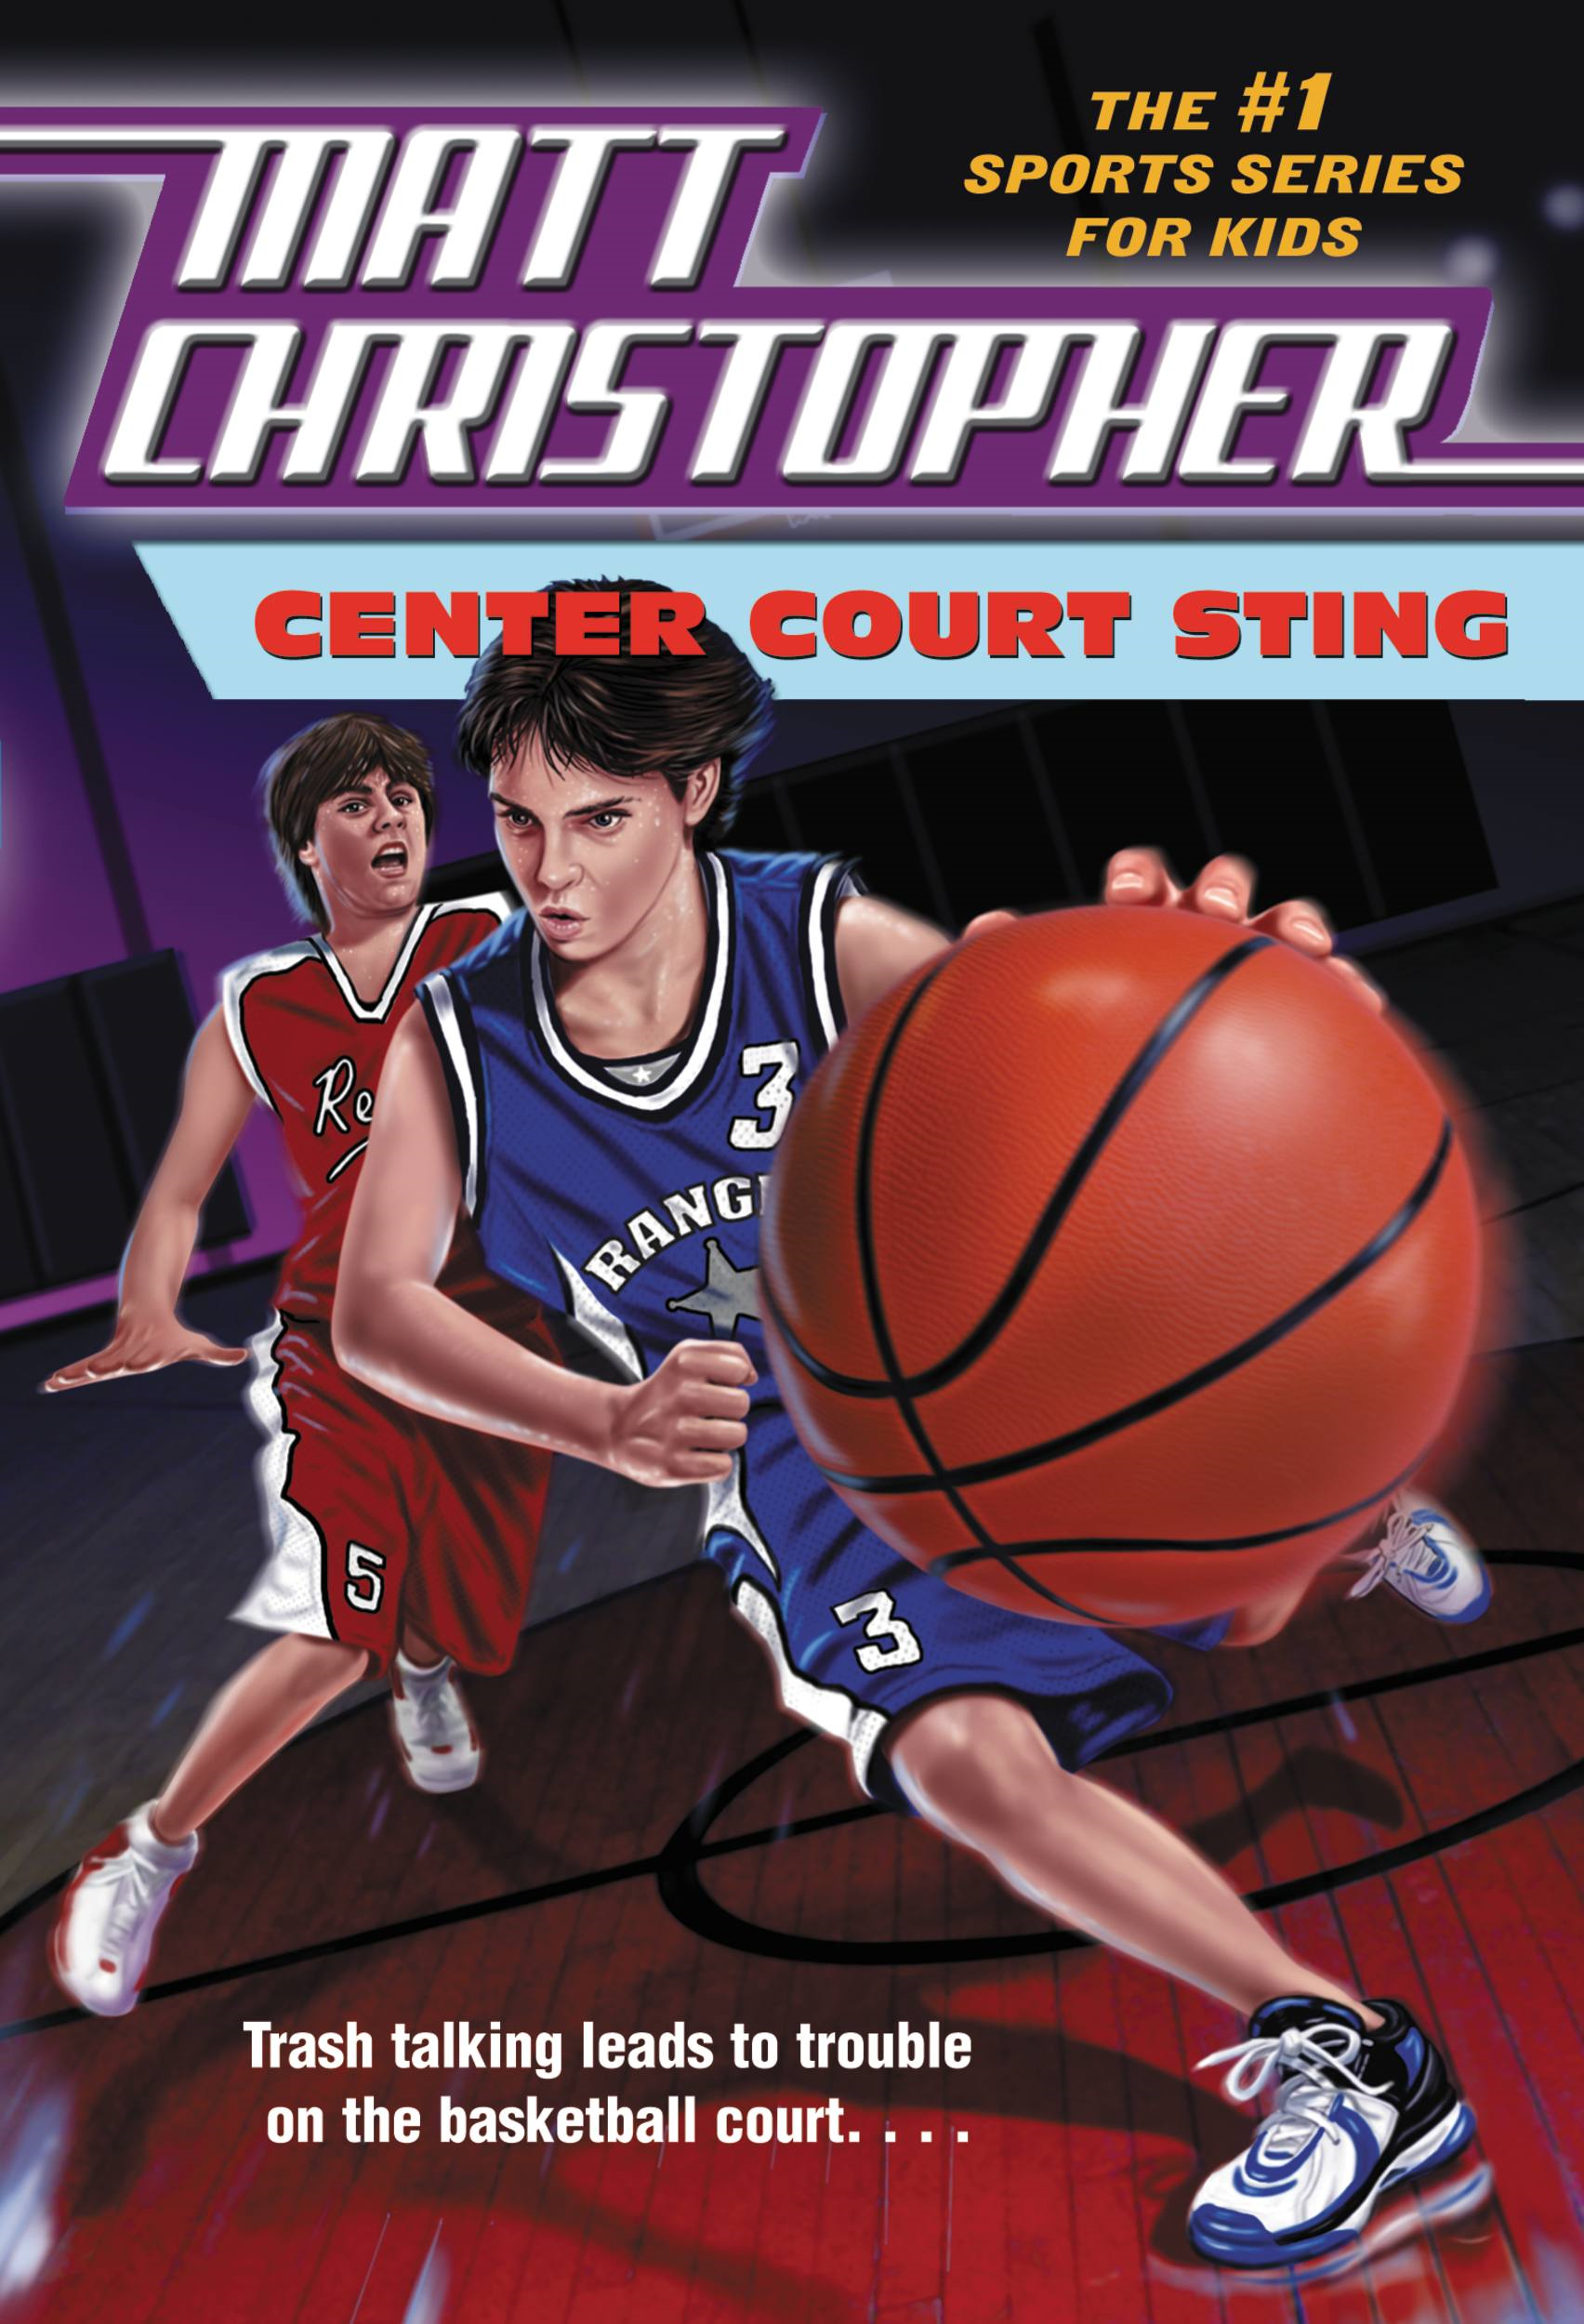 Center Court Sting By: Matt Christopher,The #1 Sports Writer for Kids